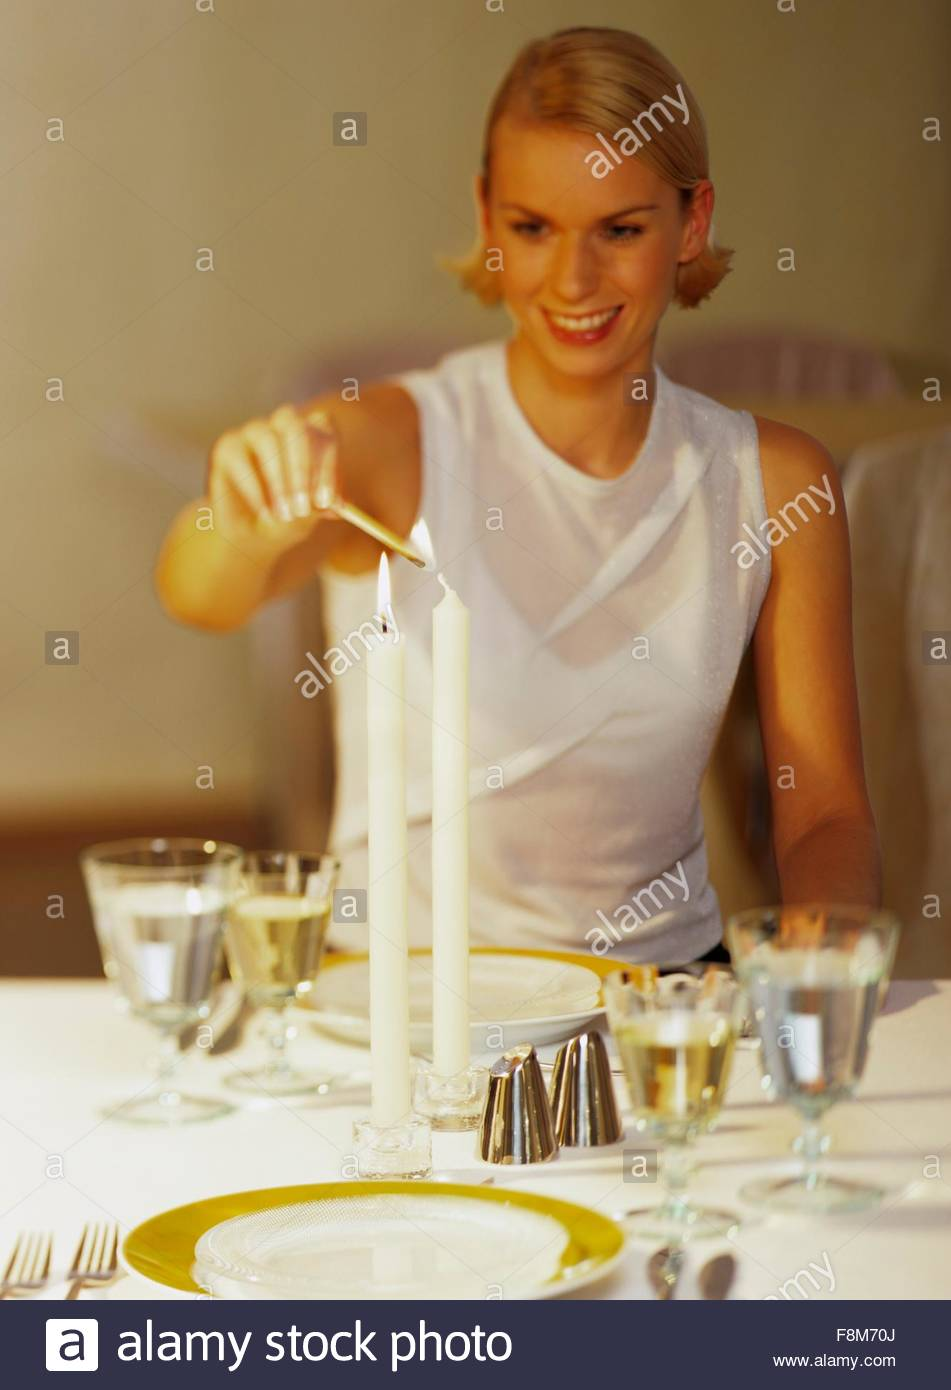 A young woman lighting a candle on a laid table - Stock Image